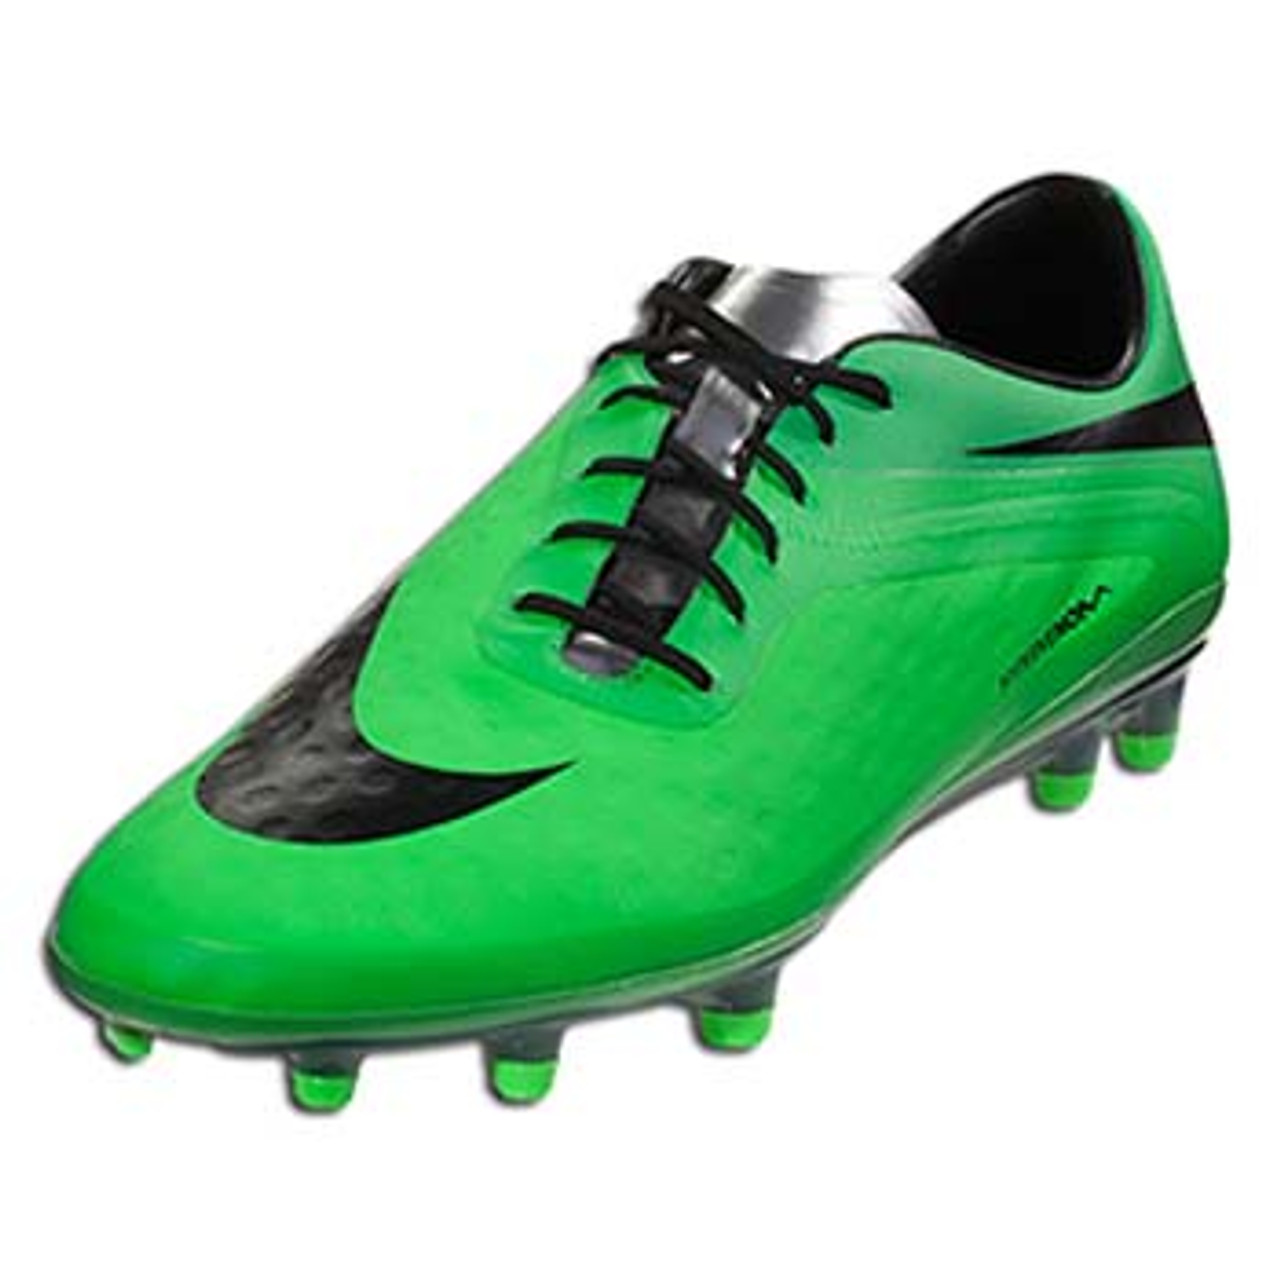 authentic price reduced new high quality Nike Hypervenom Phatal FG (Neo Lime/Green/Metallic Silver/Black)